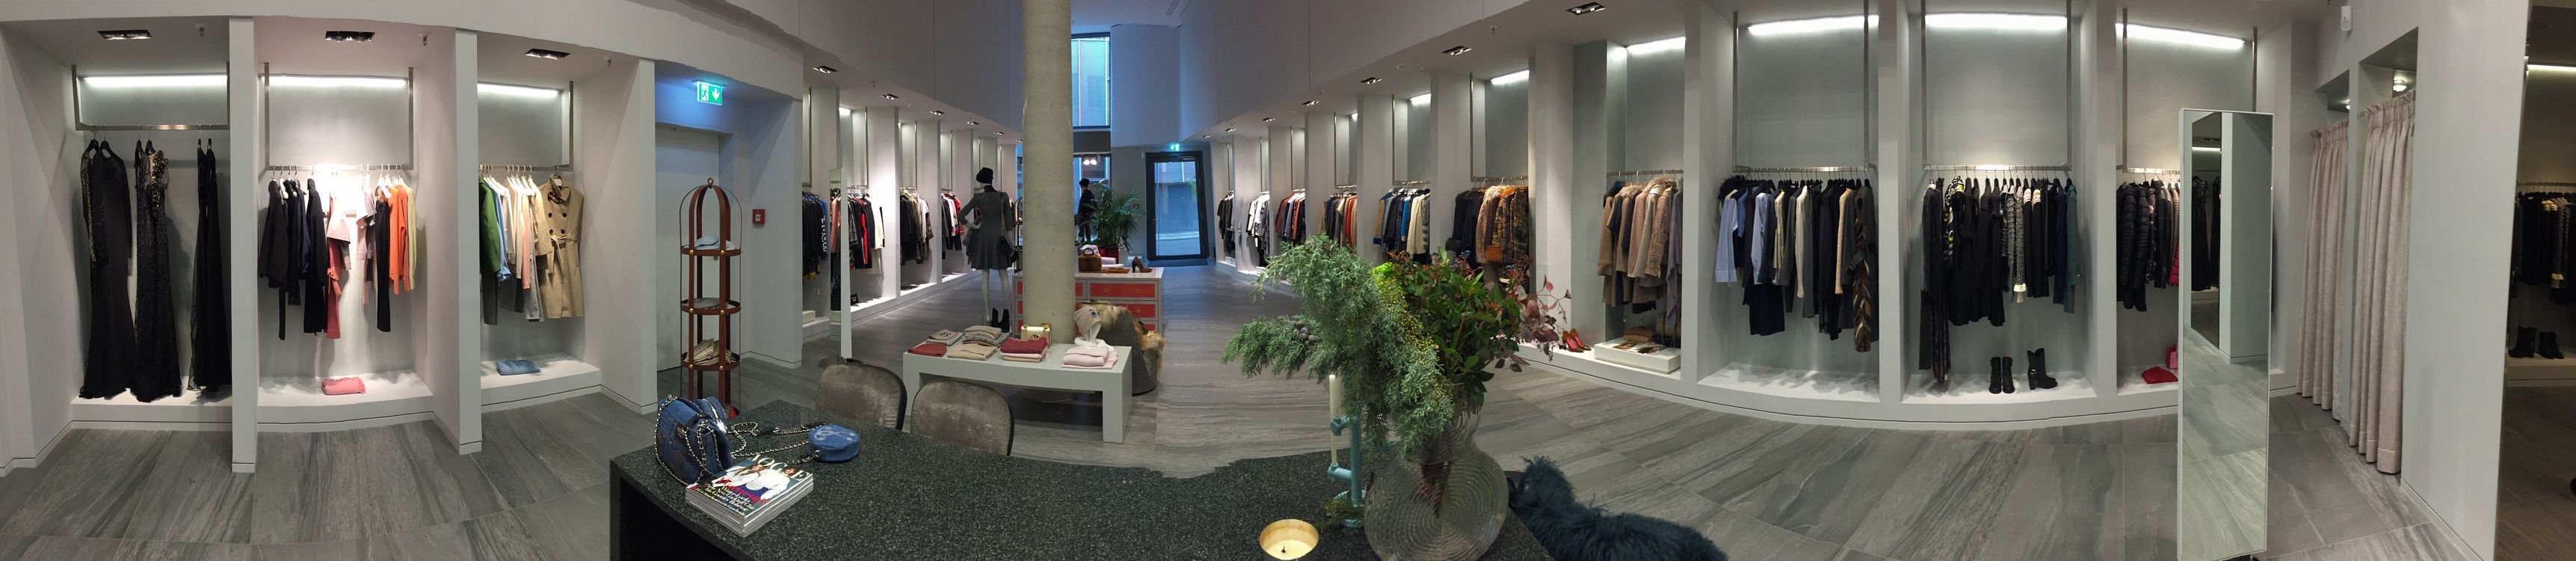 La Boutique in Augsburg (Bild 1)